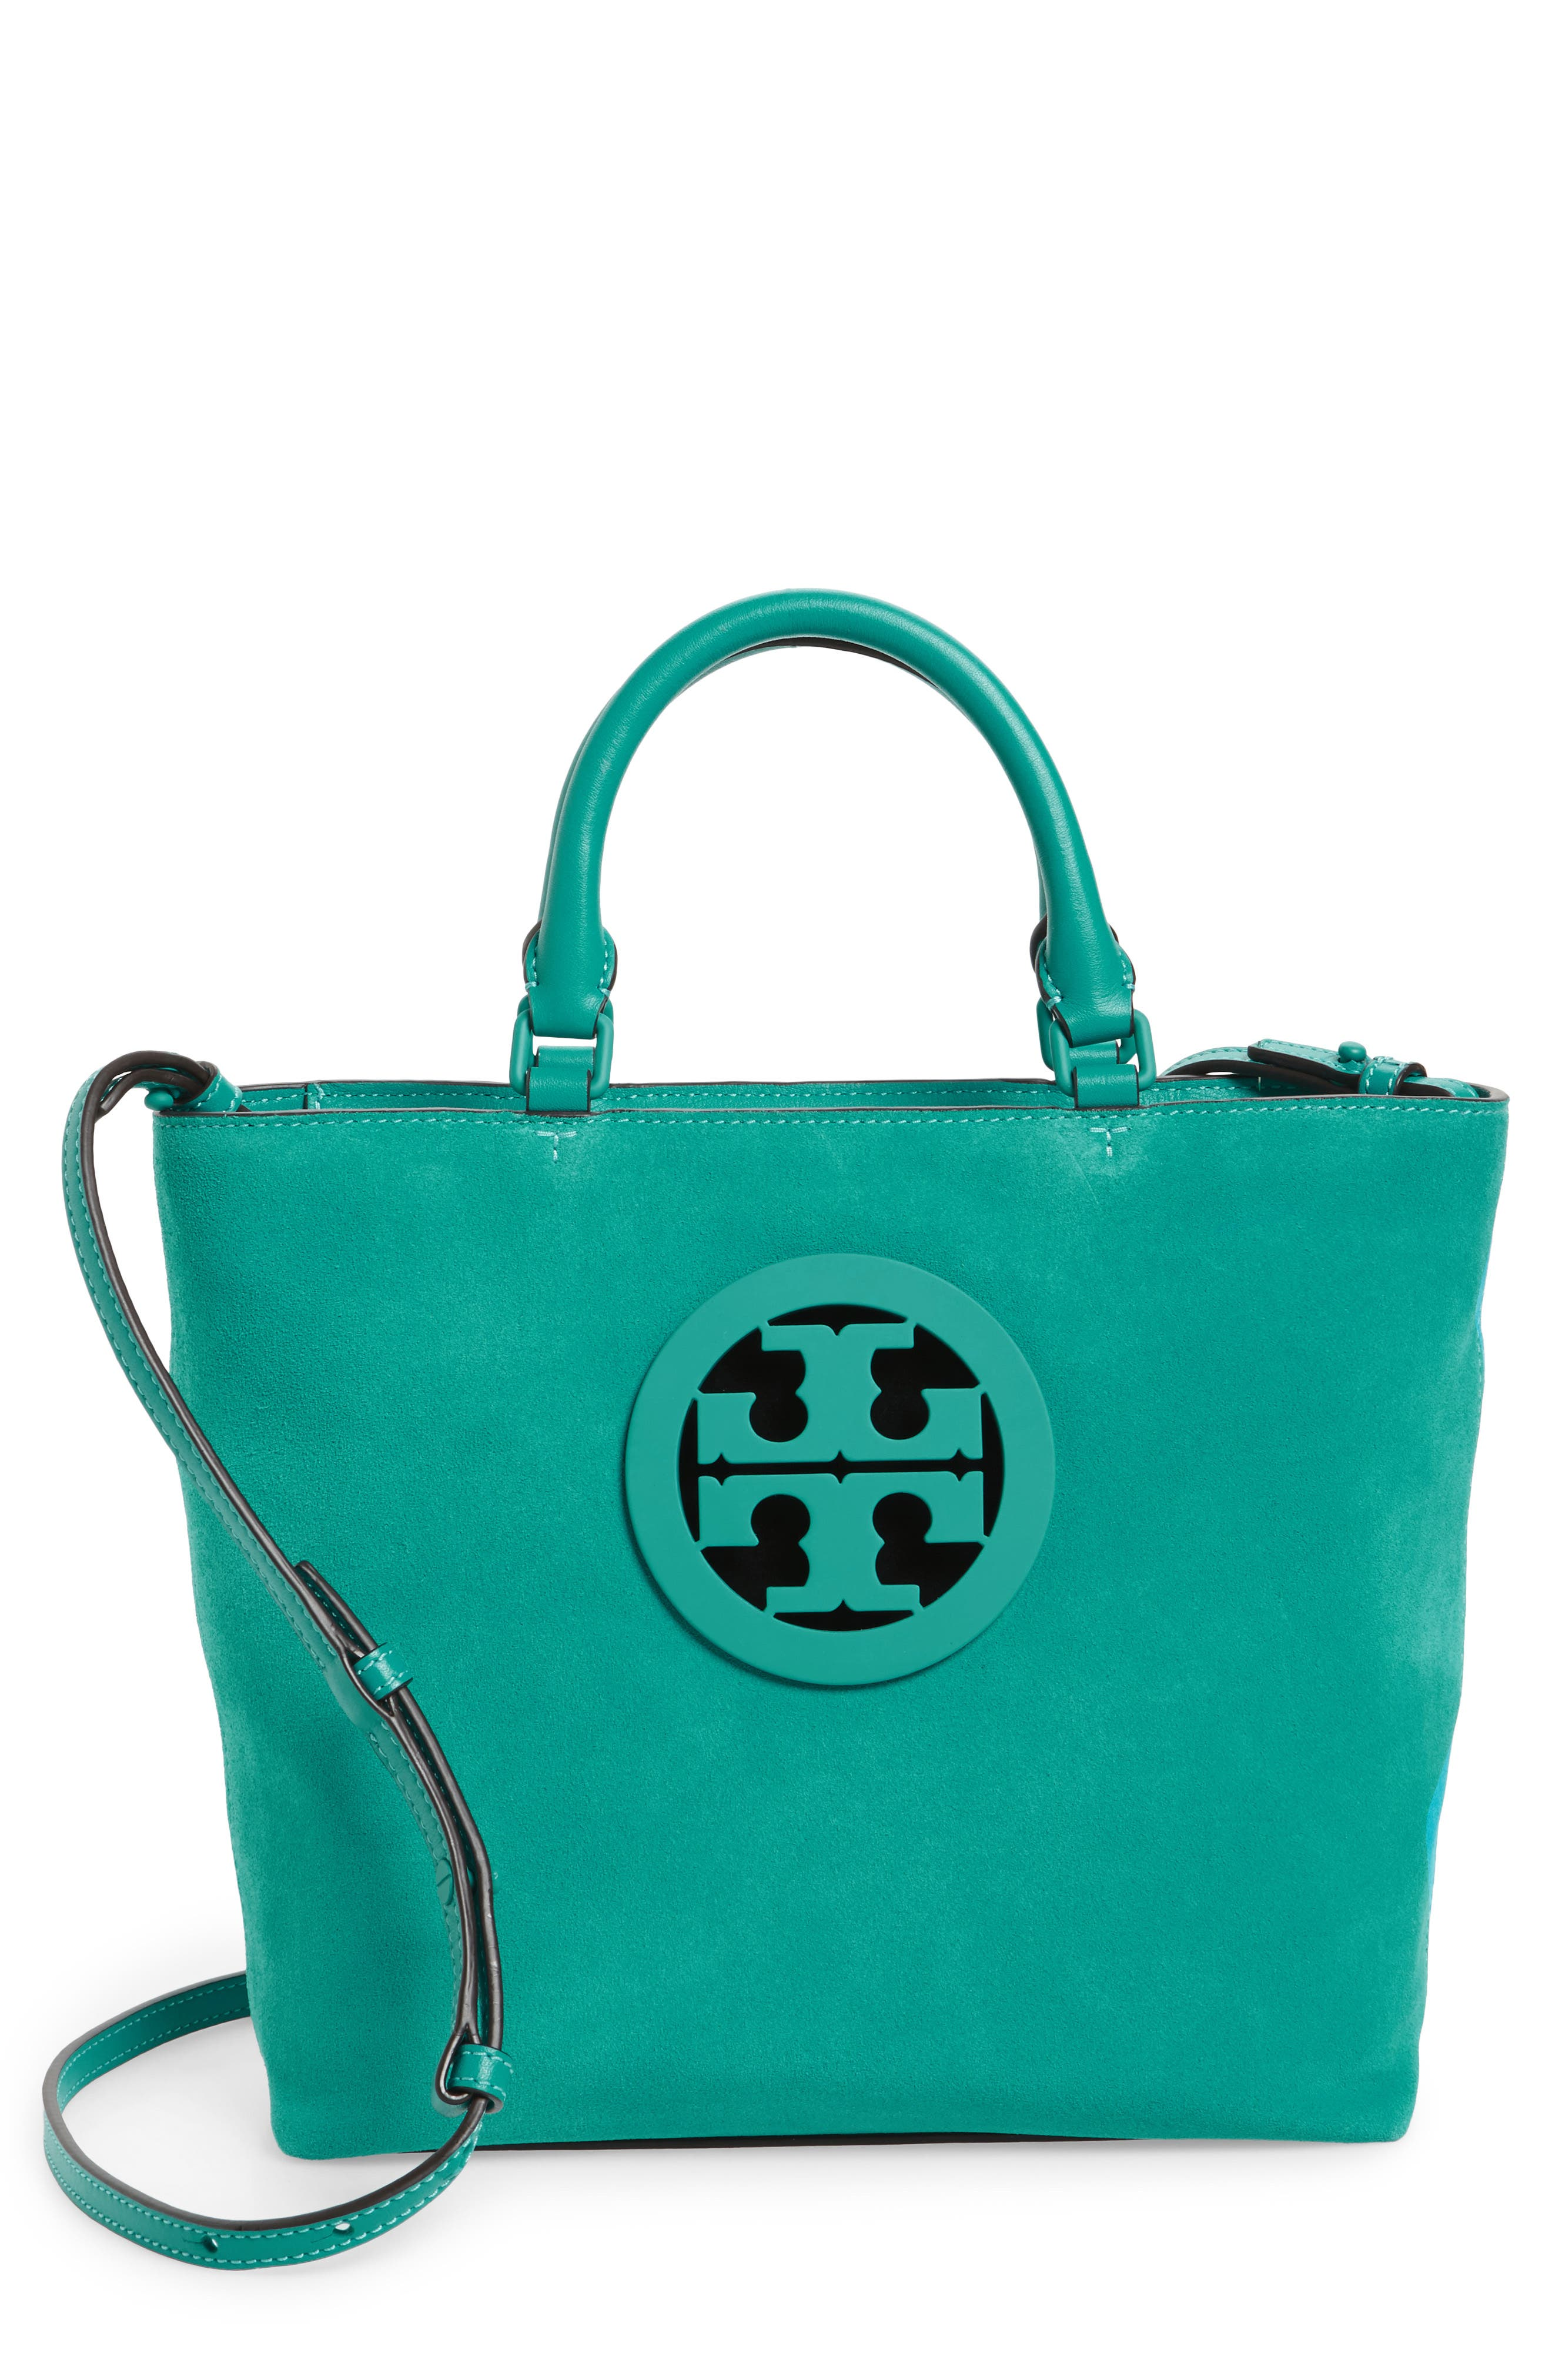 Tory Burch Small Charlie Suede Tote